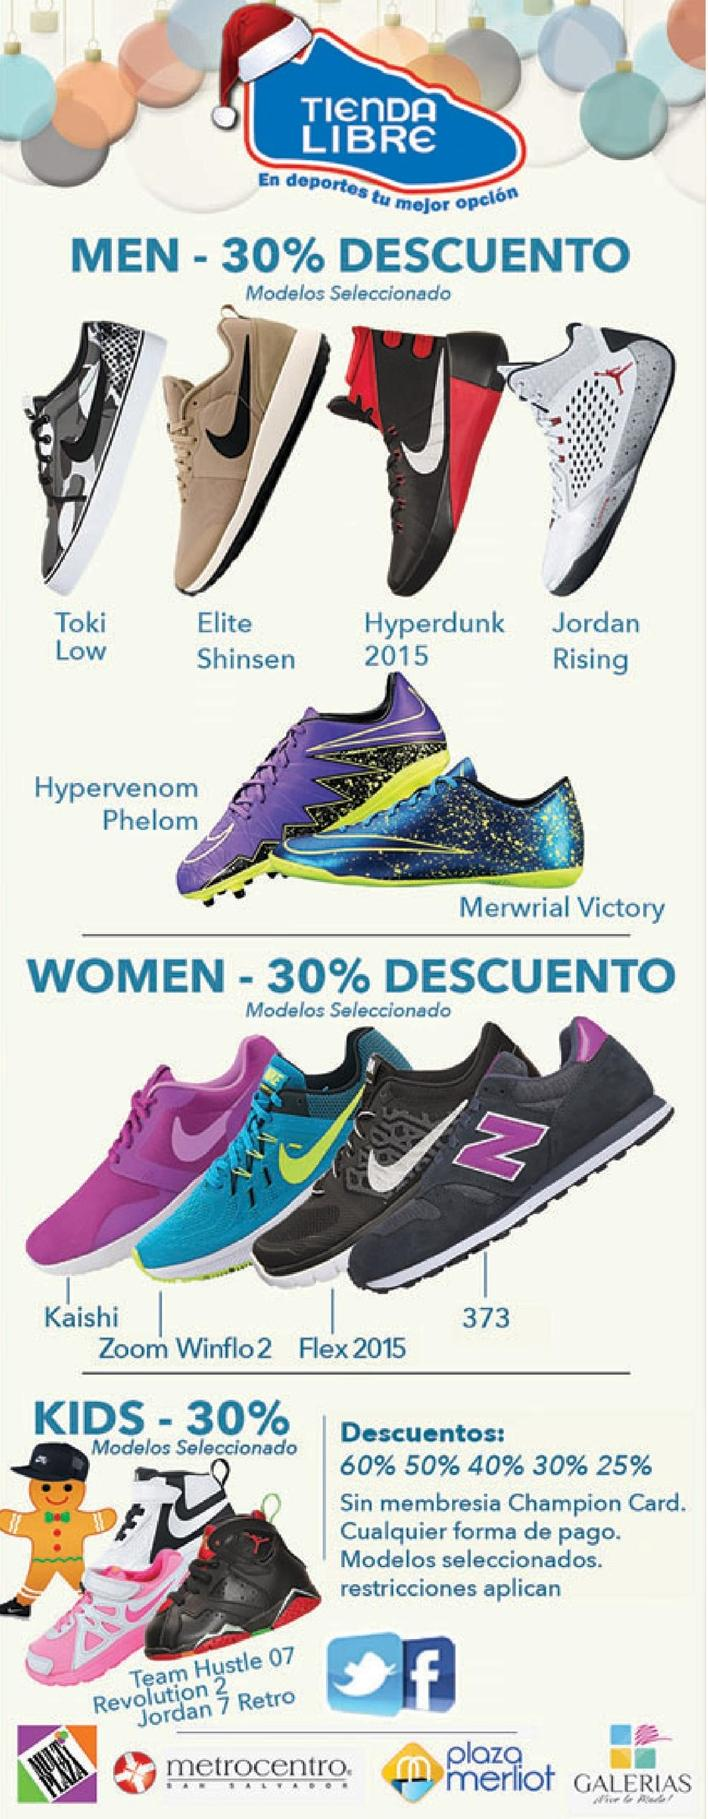 sport colouring shoes for all family